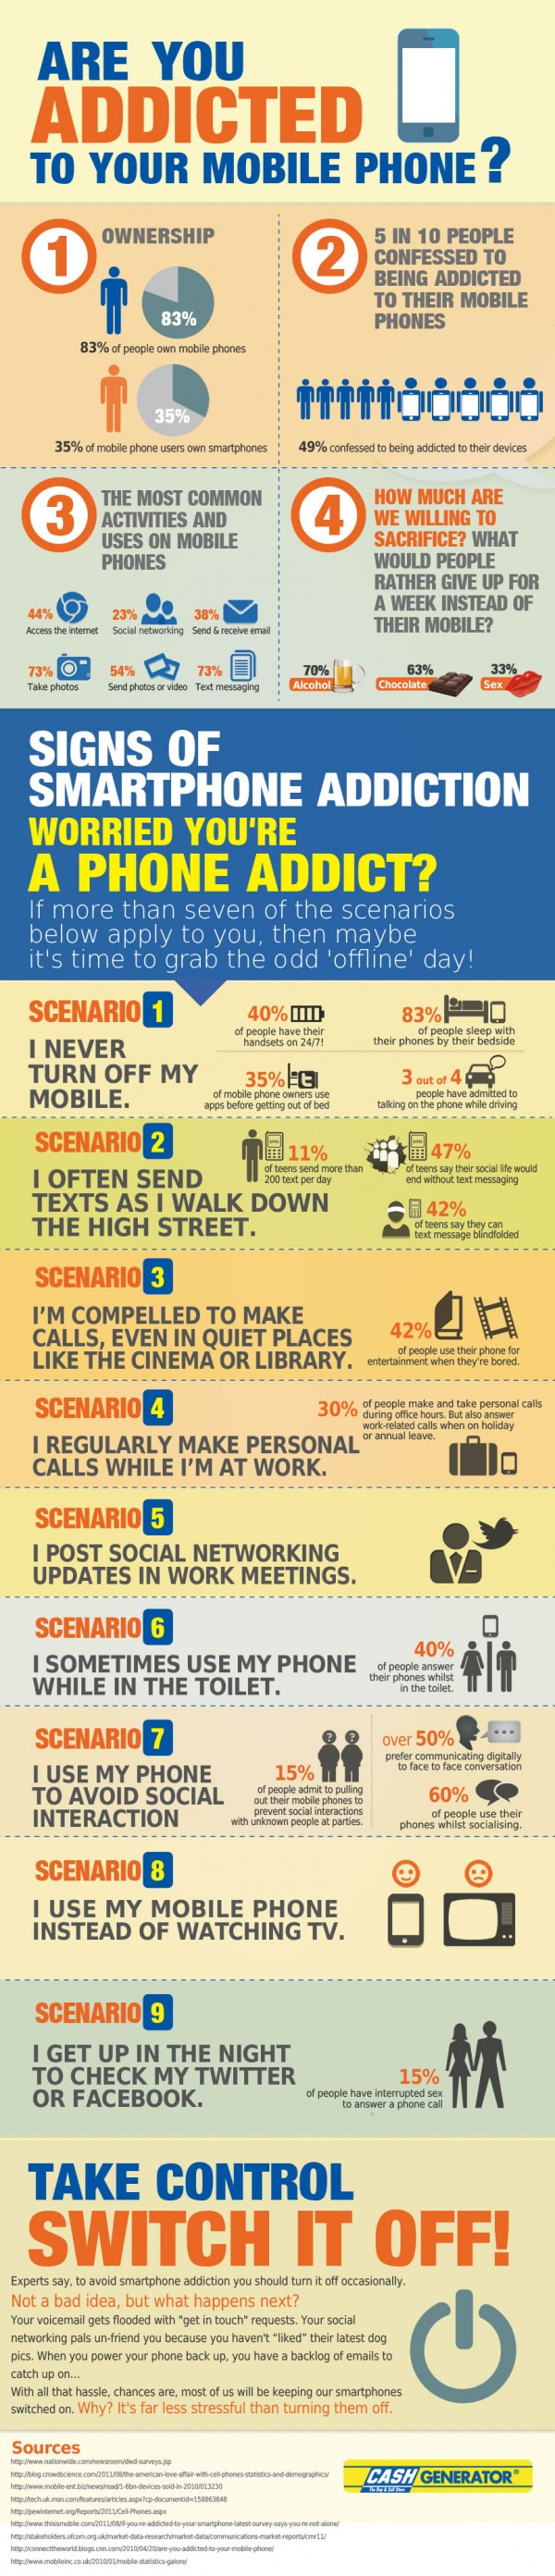 are-you-addicted-to-your-mobile-phone